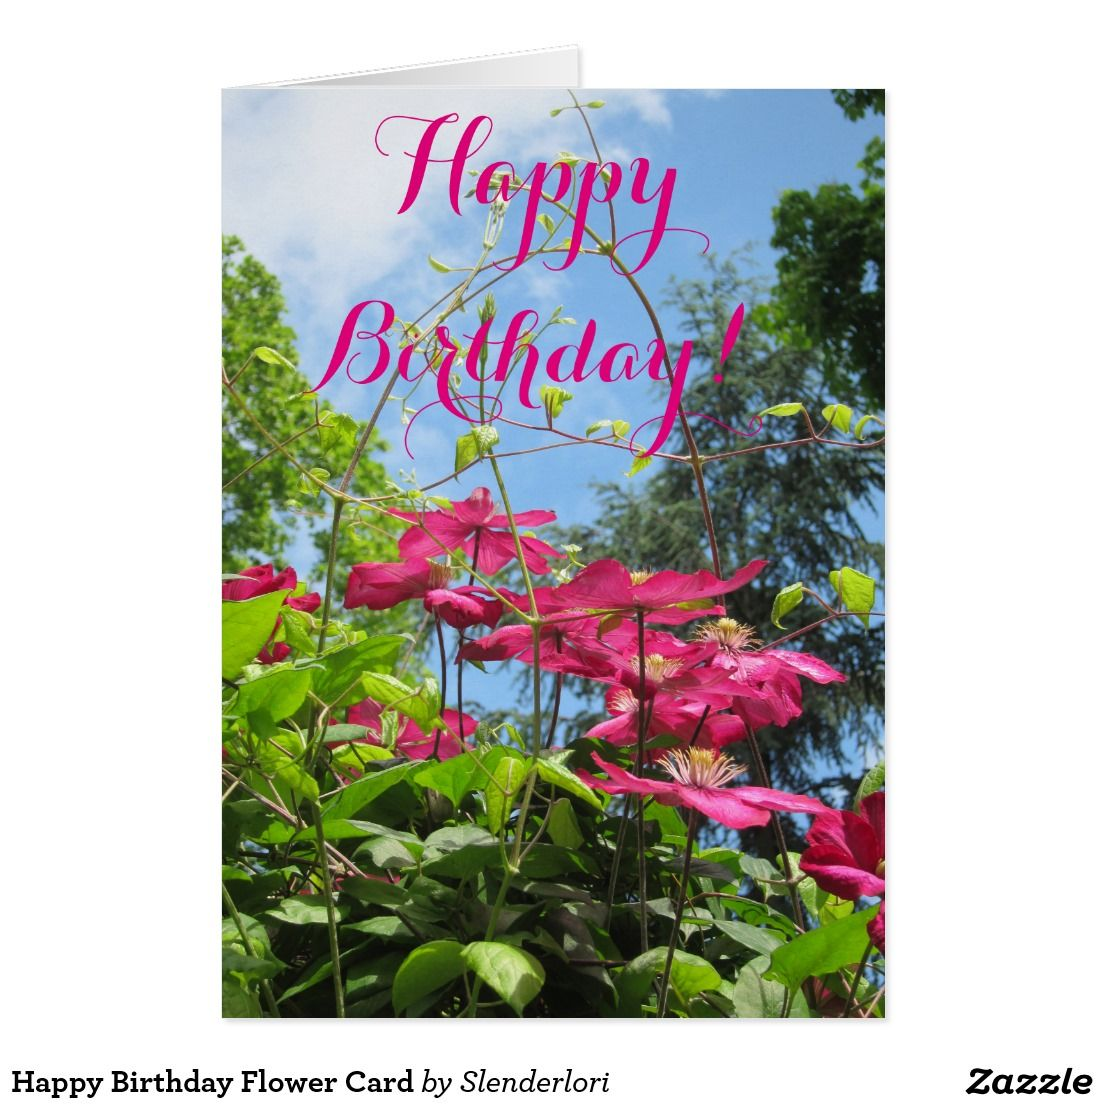 Happy birthday flower card birthday cards pinterest flower cards happy birthday flower card izmirmasajfo